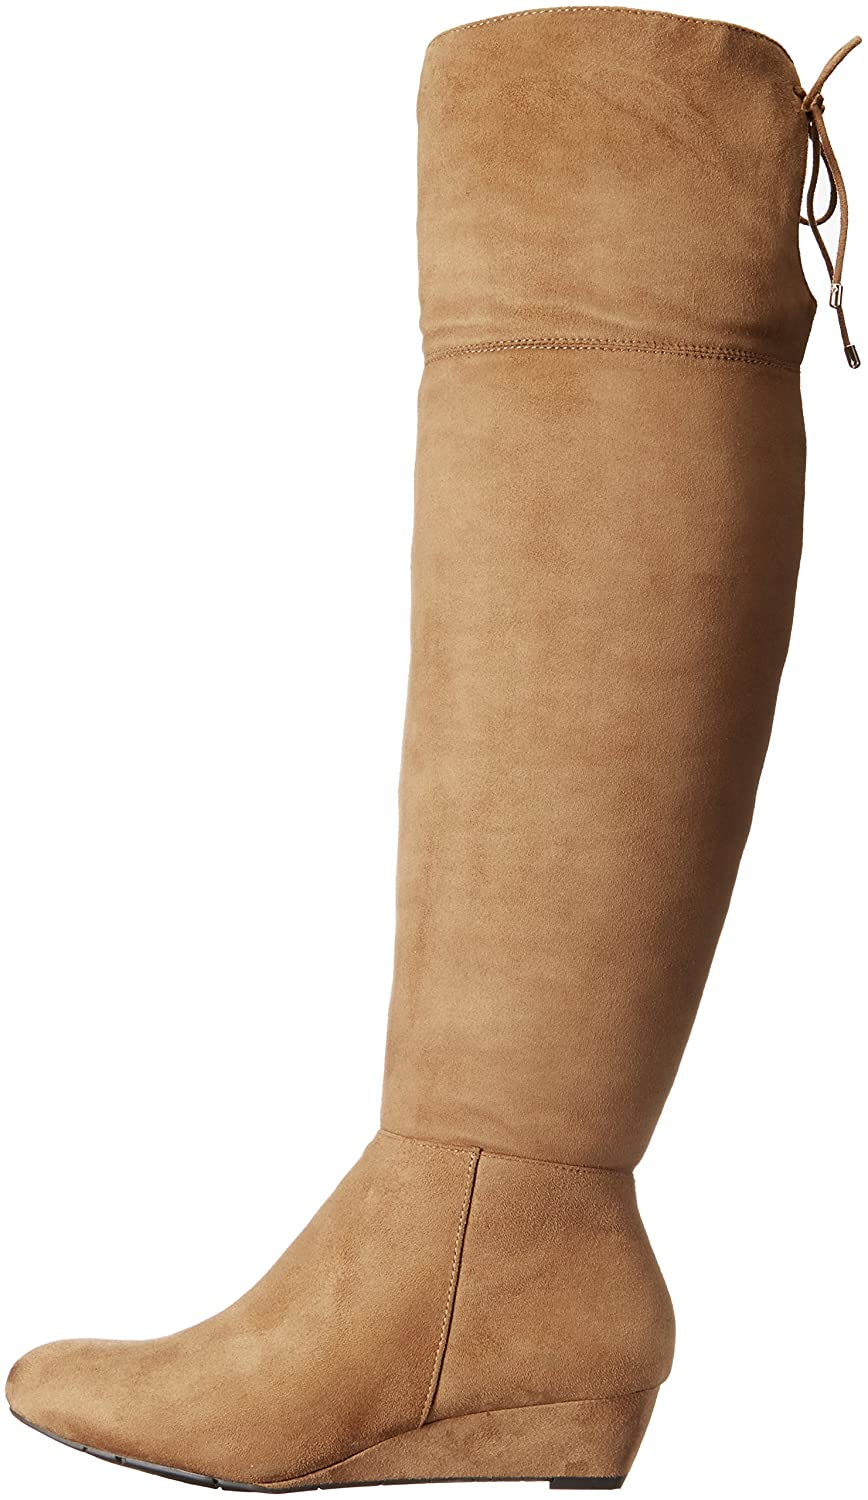 Jessica Simpson Women's Baiden Riding Boot B01ICUDVT6 8 B(M) US|Honey Brown